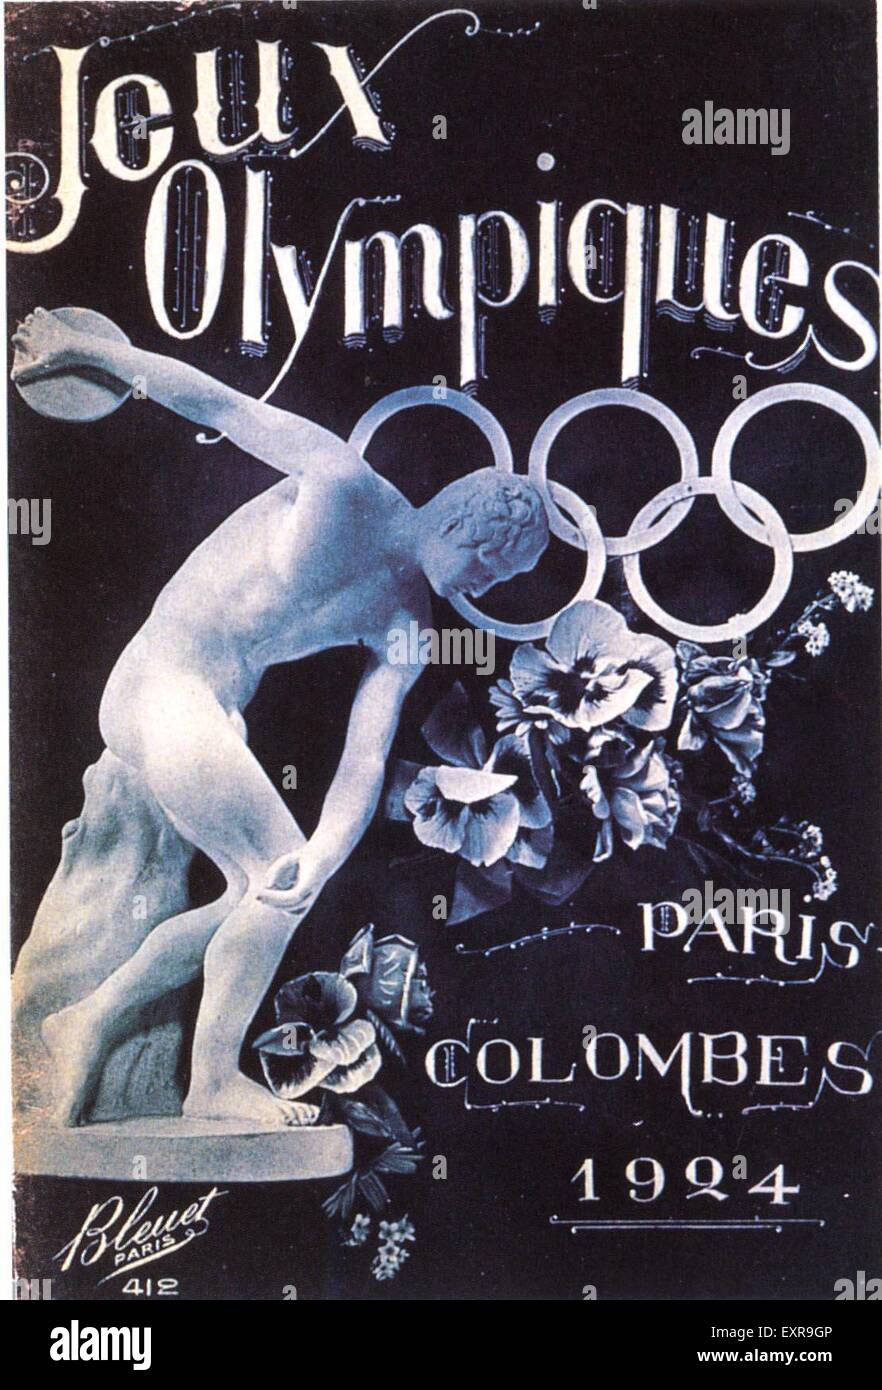 1920s France Olympic Games Poster Stock Photo